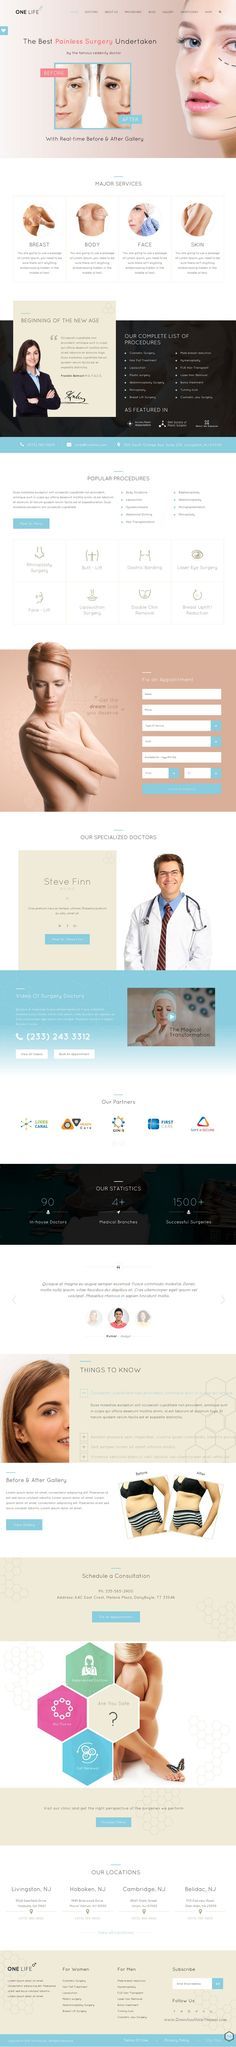 One Life is a versatile WordPress theme for the #Cosmetic Medical Center, Plastic #Surgeons, Hospitals, Beauty #Clinics, Health Care Companies, Pharmaceuticals and all medical related business #website. Download Now!